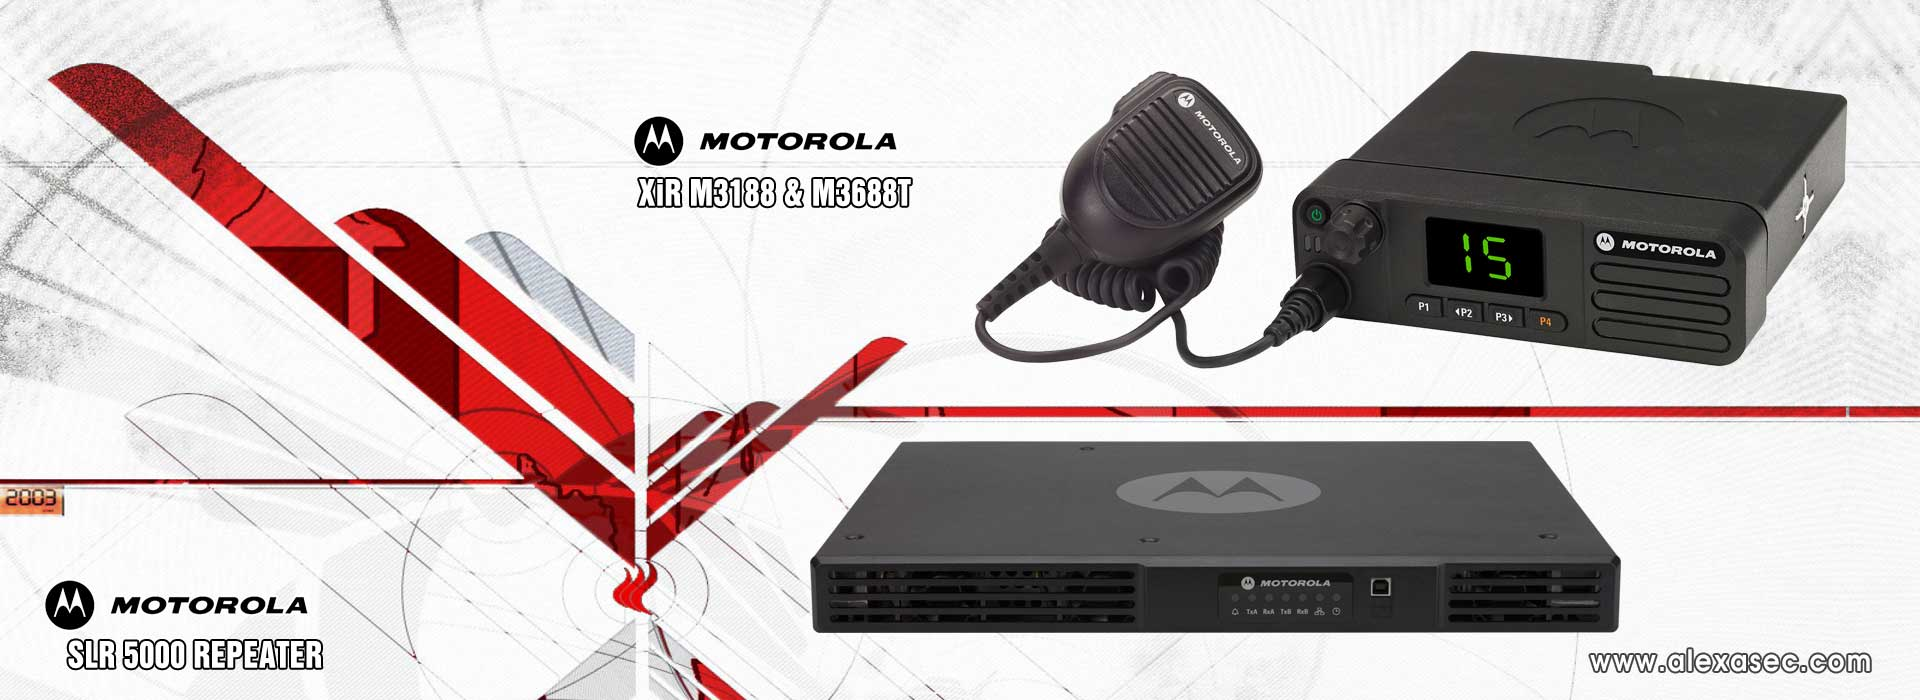 Motorola walkie talkie dealers distributors in delhi India, Punjab